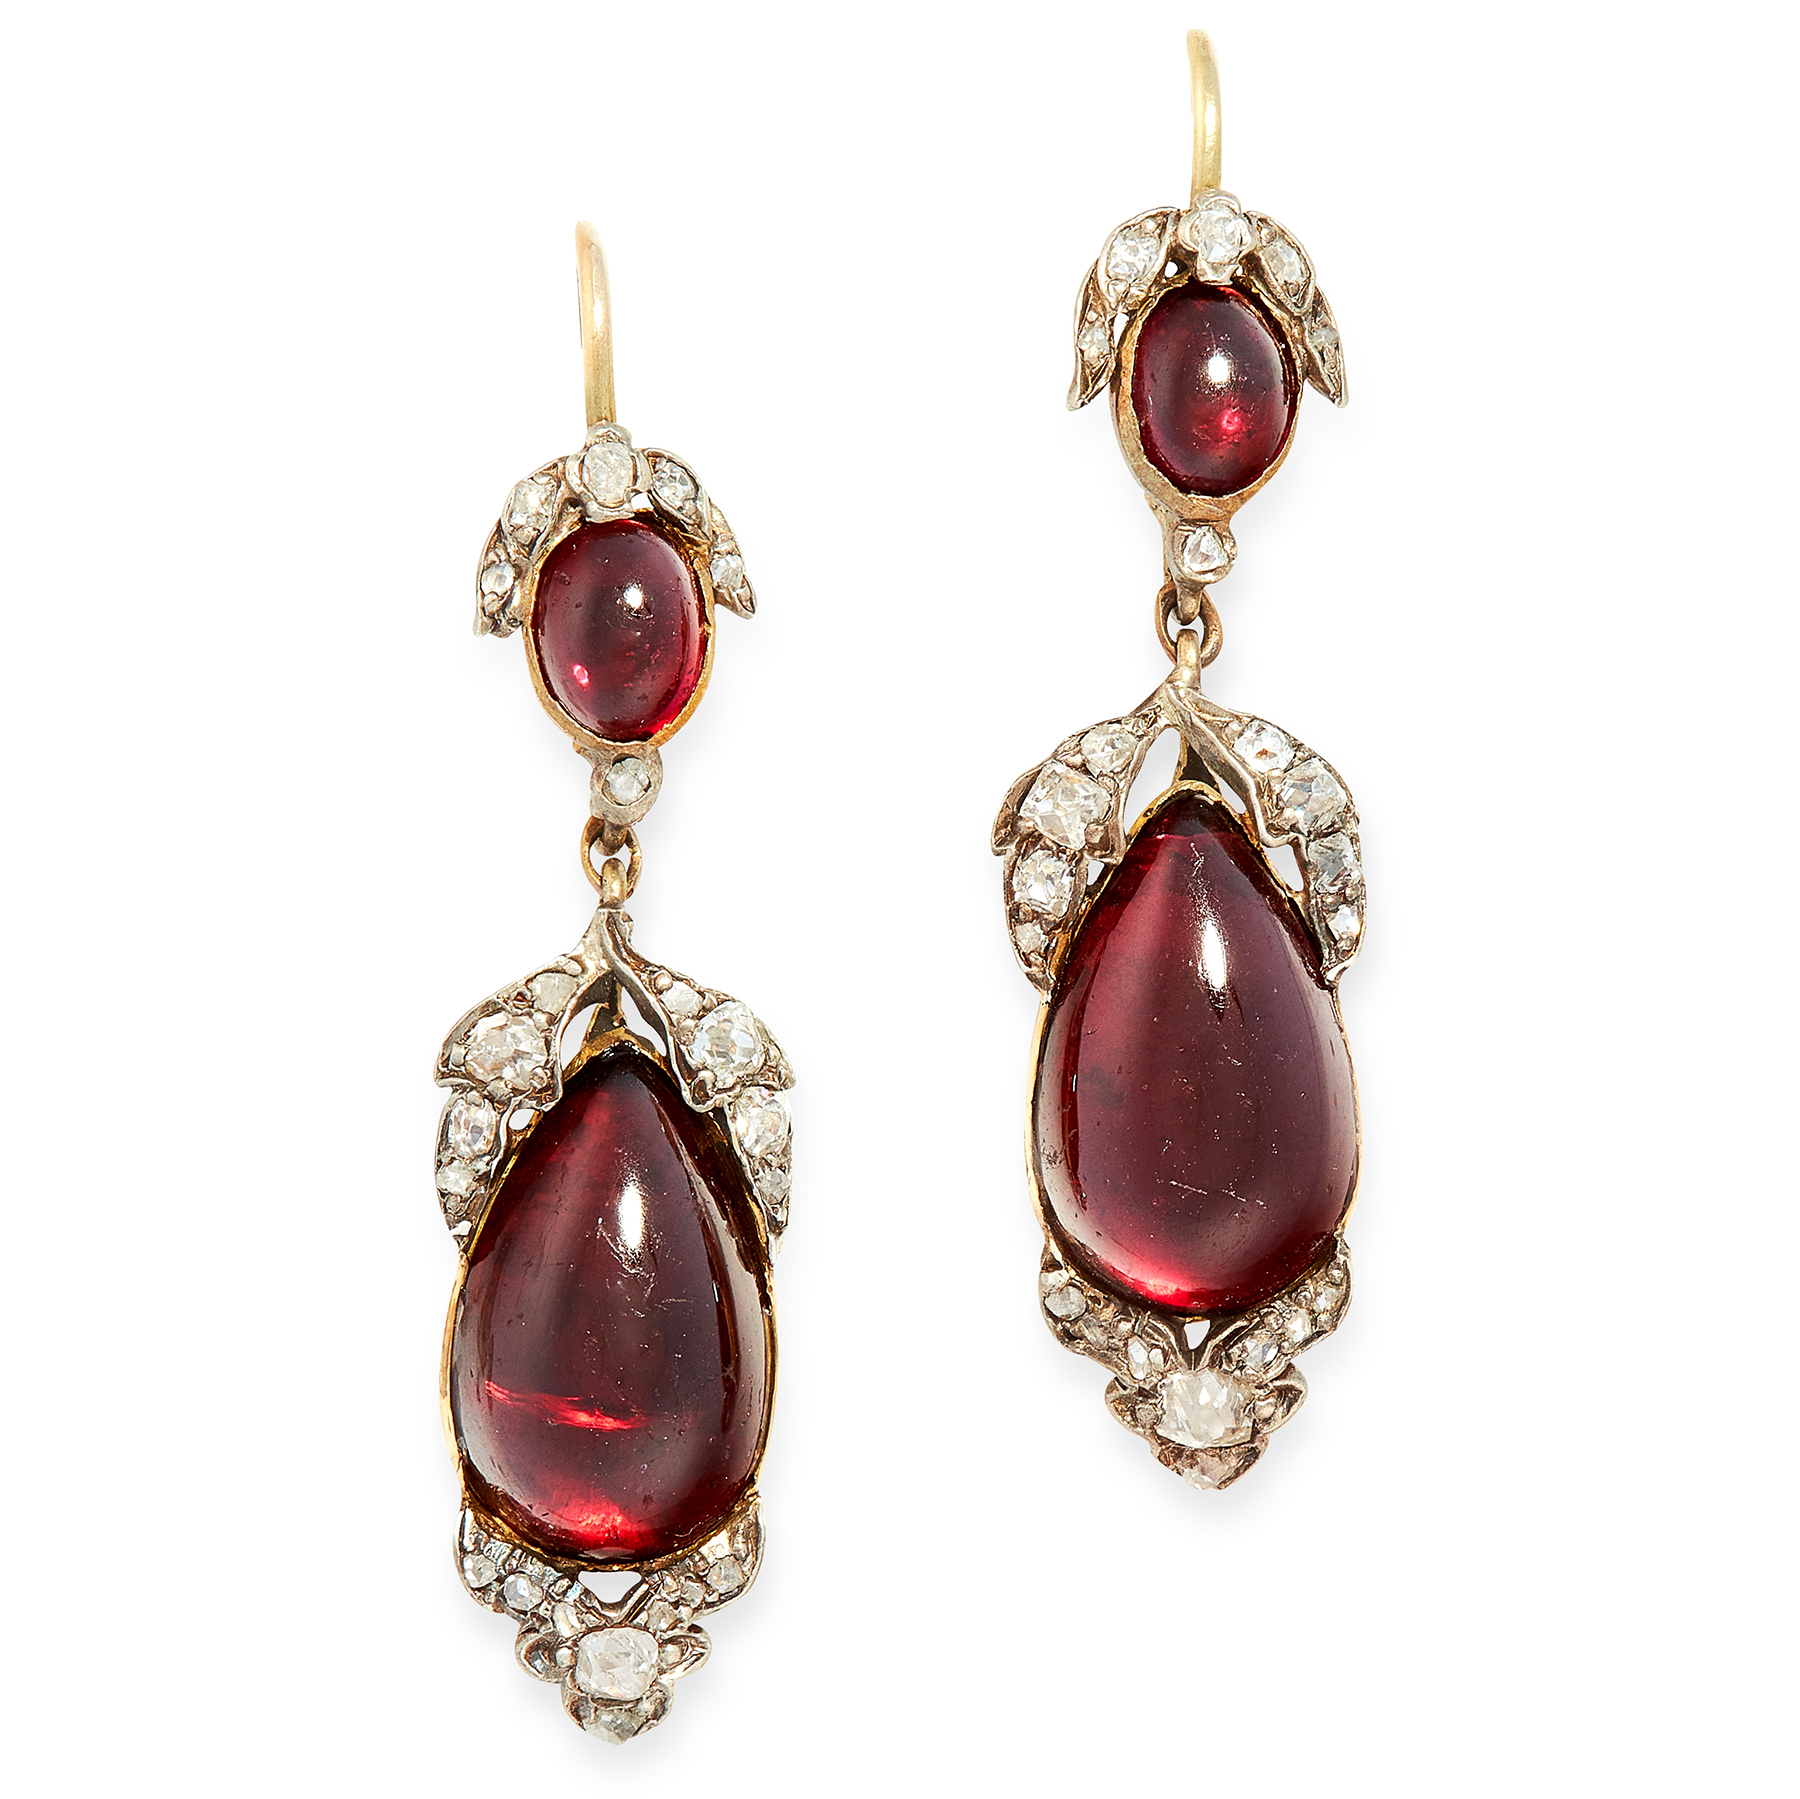 A PAIR OF ANTIQUE GARNET AND DIAMOND DROP EARRINGS in yellow gold and silver, each formed of a